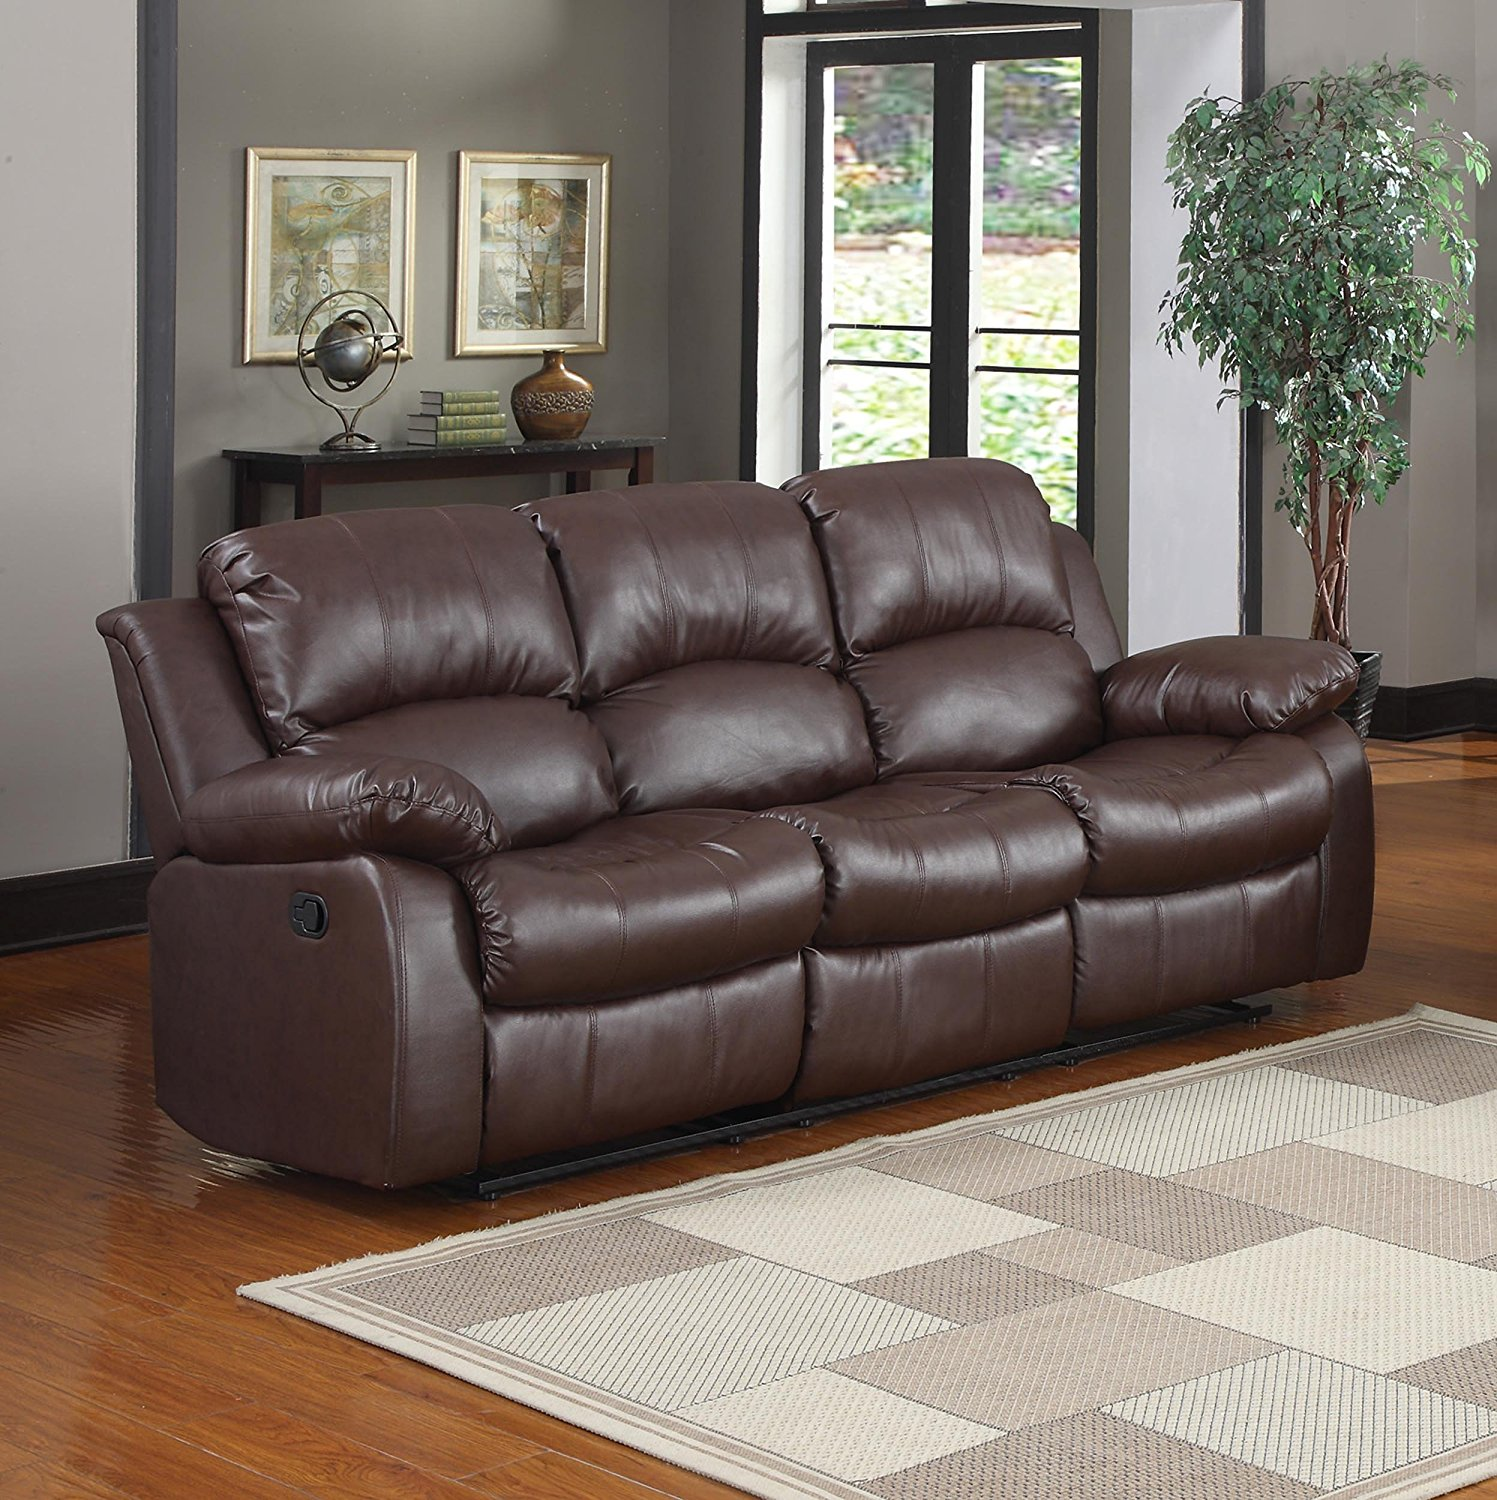 Top 10 Best Leather Reclining Sofas In 2020 Reviews